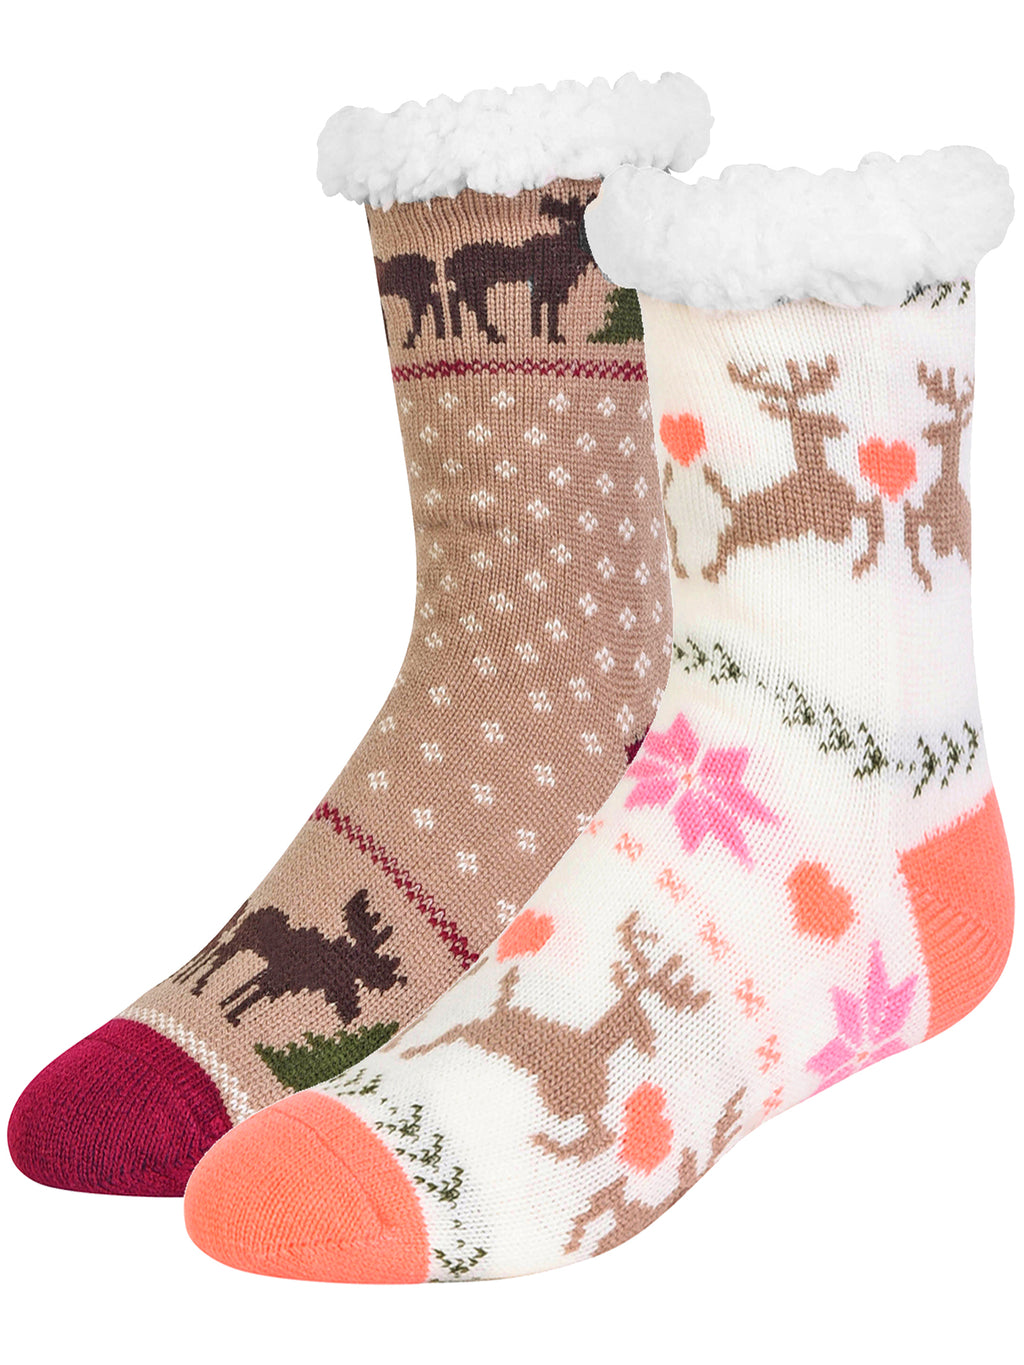 Deer & Moose Winter 2-Pack Slipper Socks